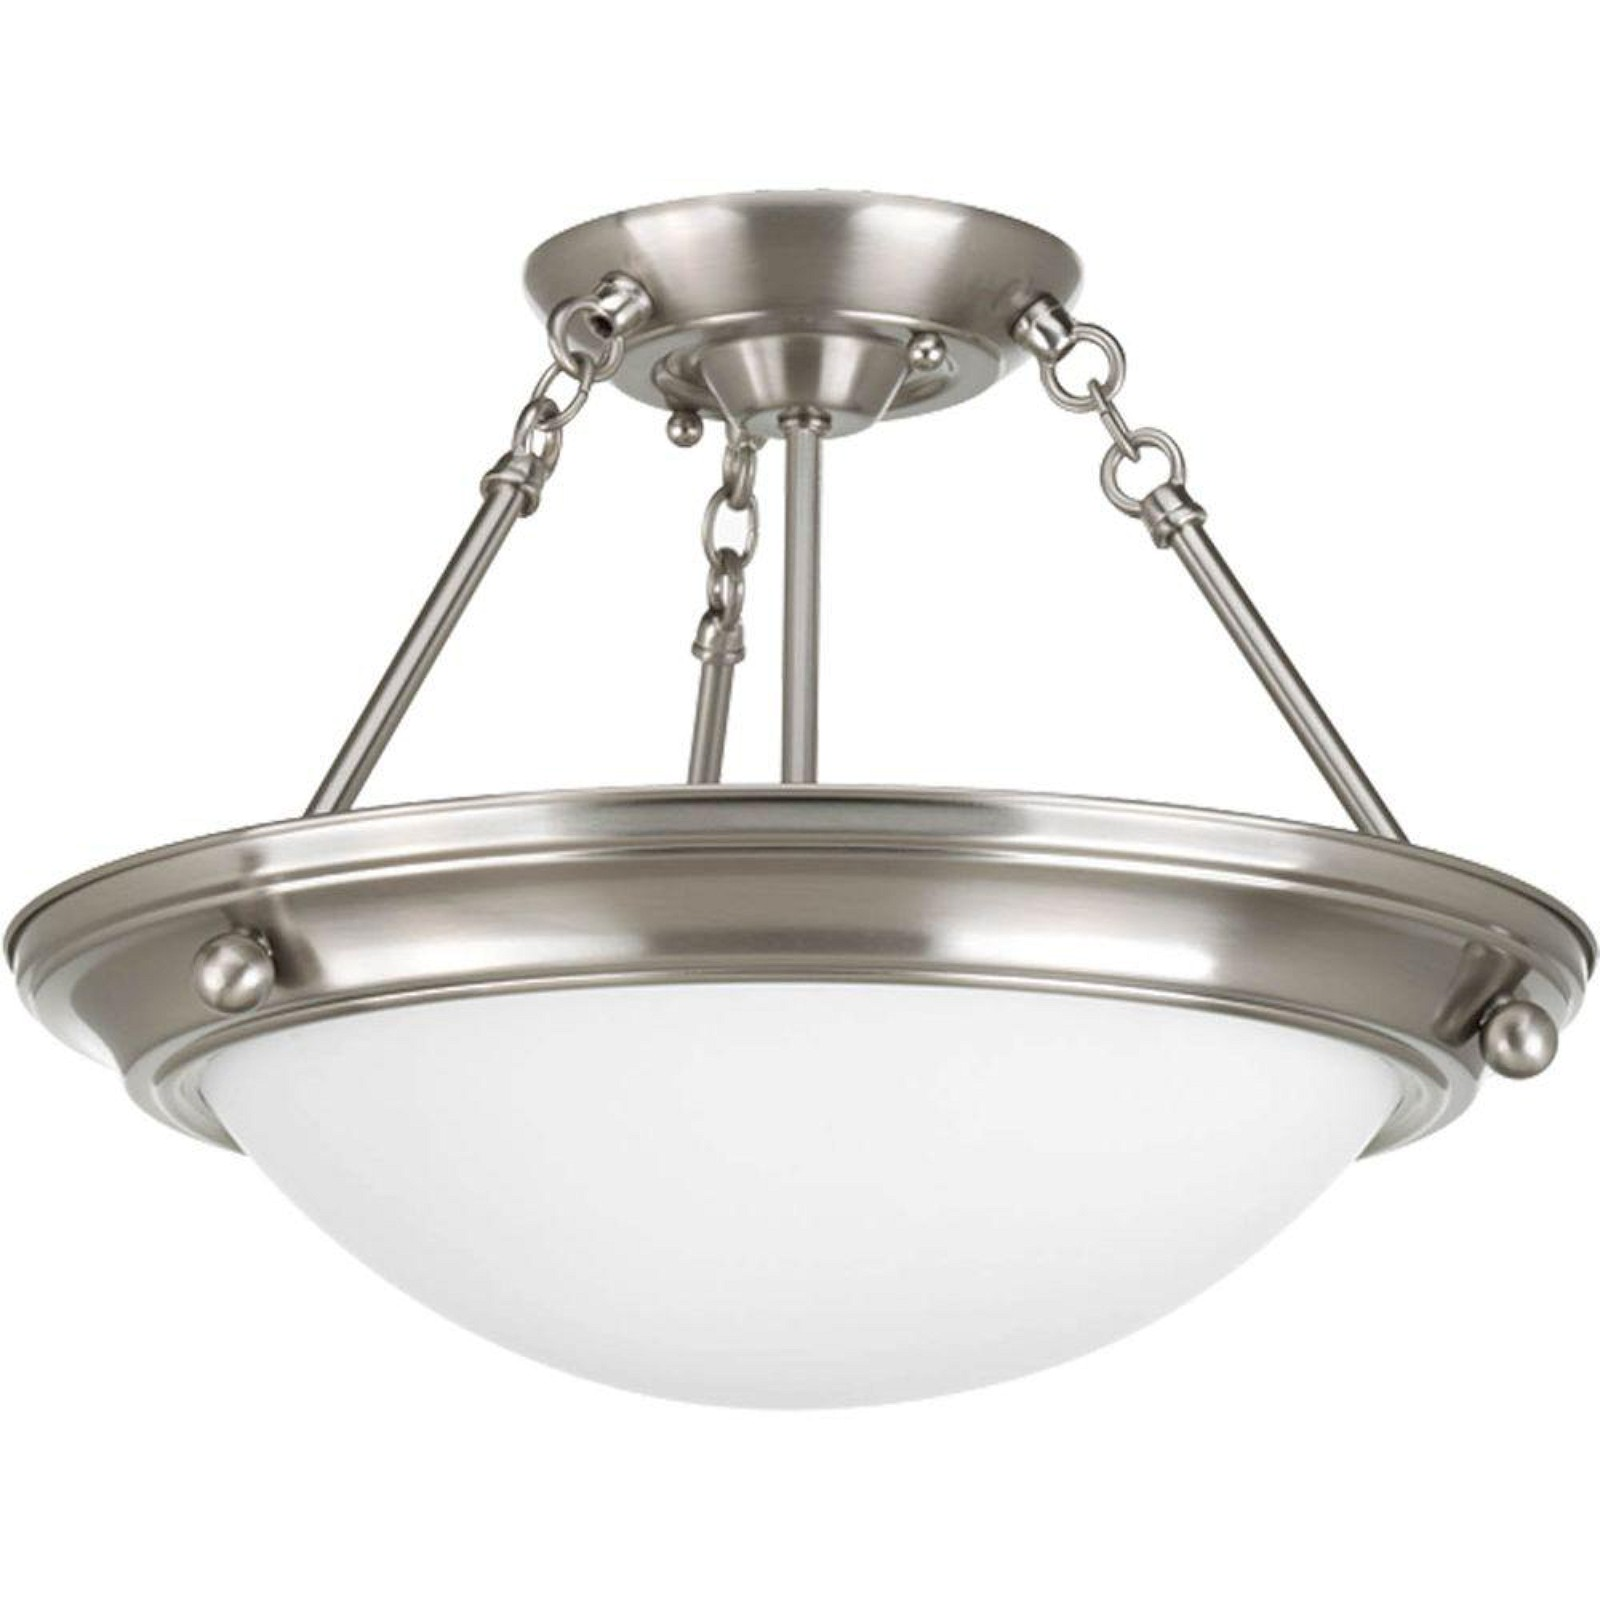 0bae9991e1d Progress Lighting Eclipse Collection 2-Light Brushed Nickel Semi-Flushmount